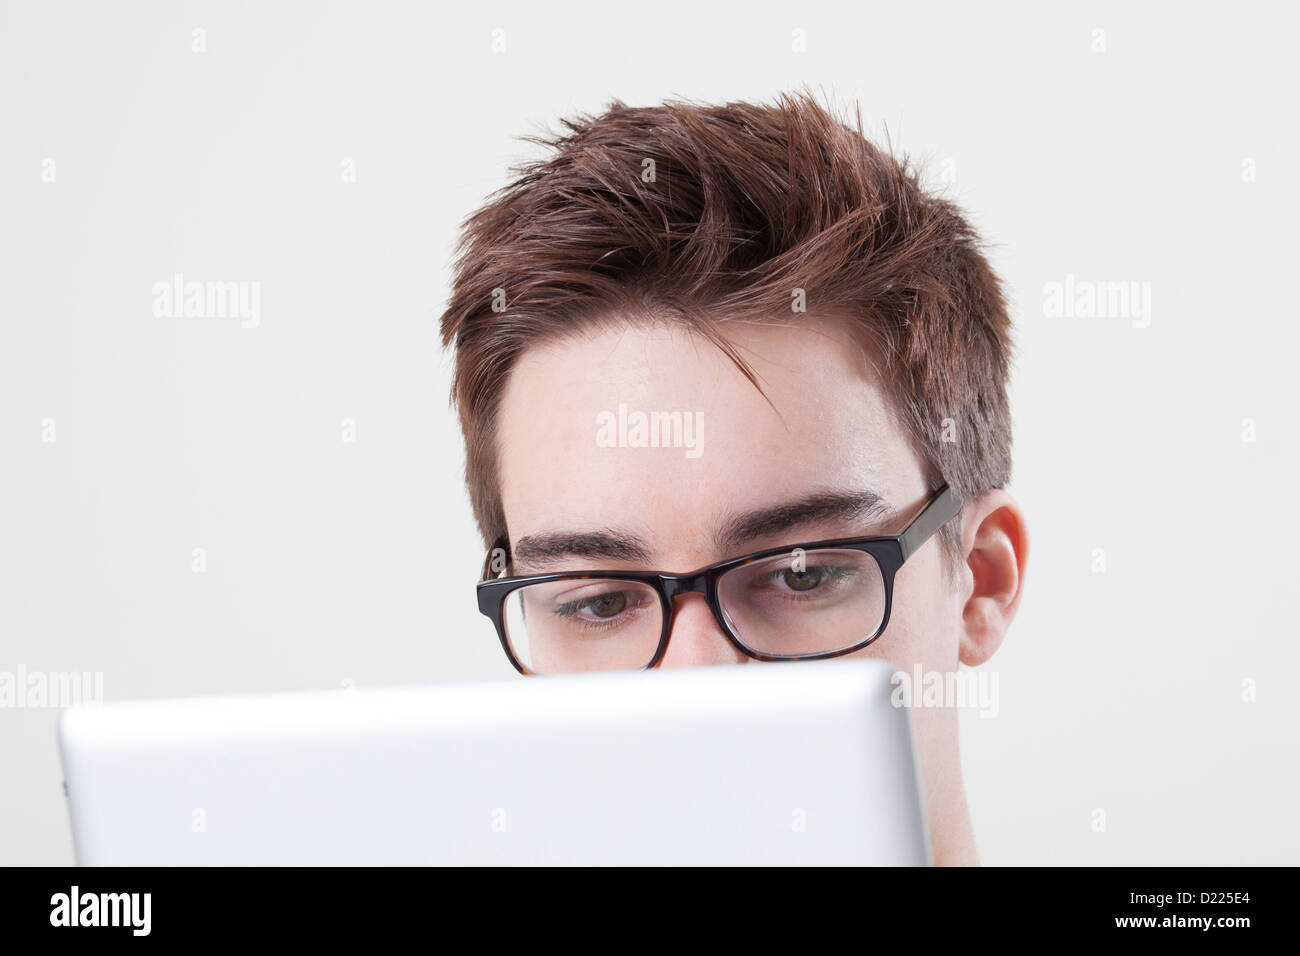 Young male wearing glasses looking at the screen of his laptop or digital tablet. Close up on eyes. - Stock Image